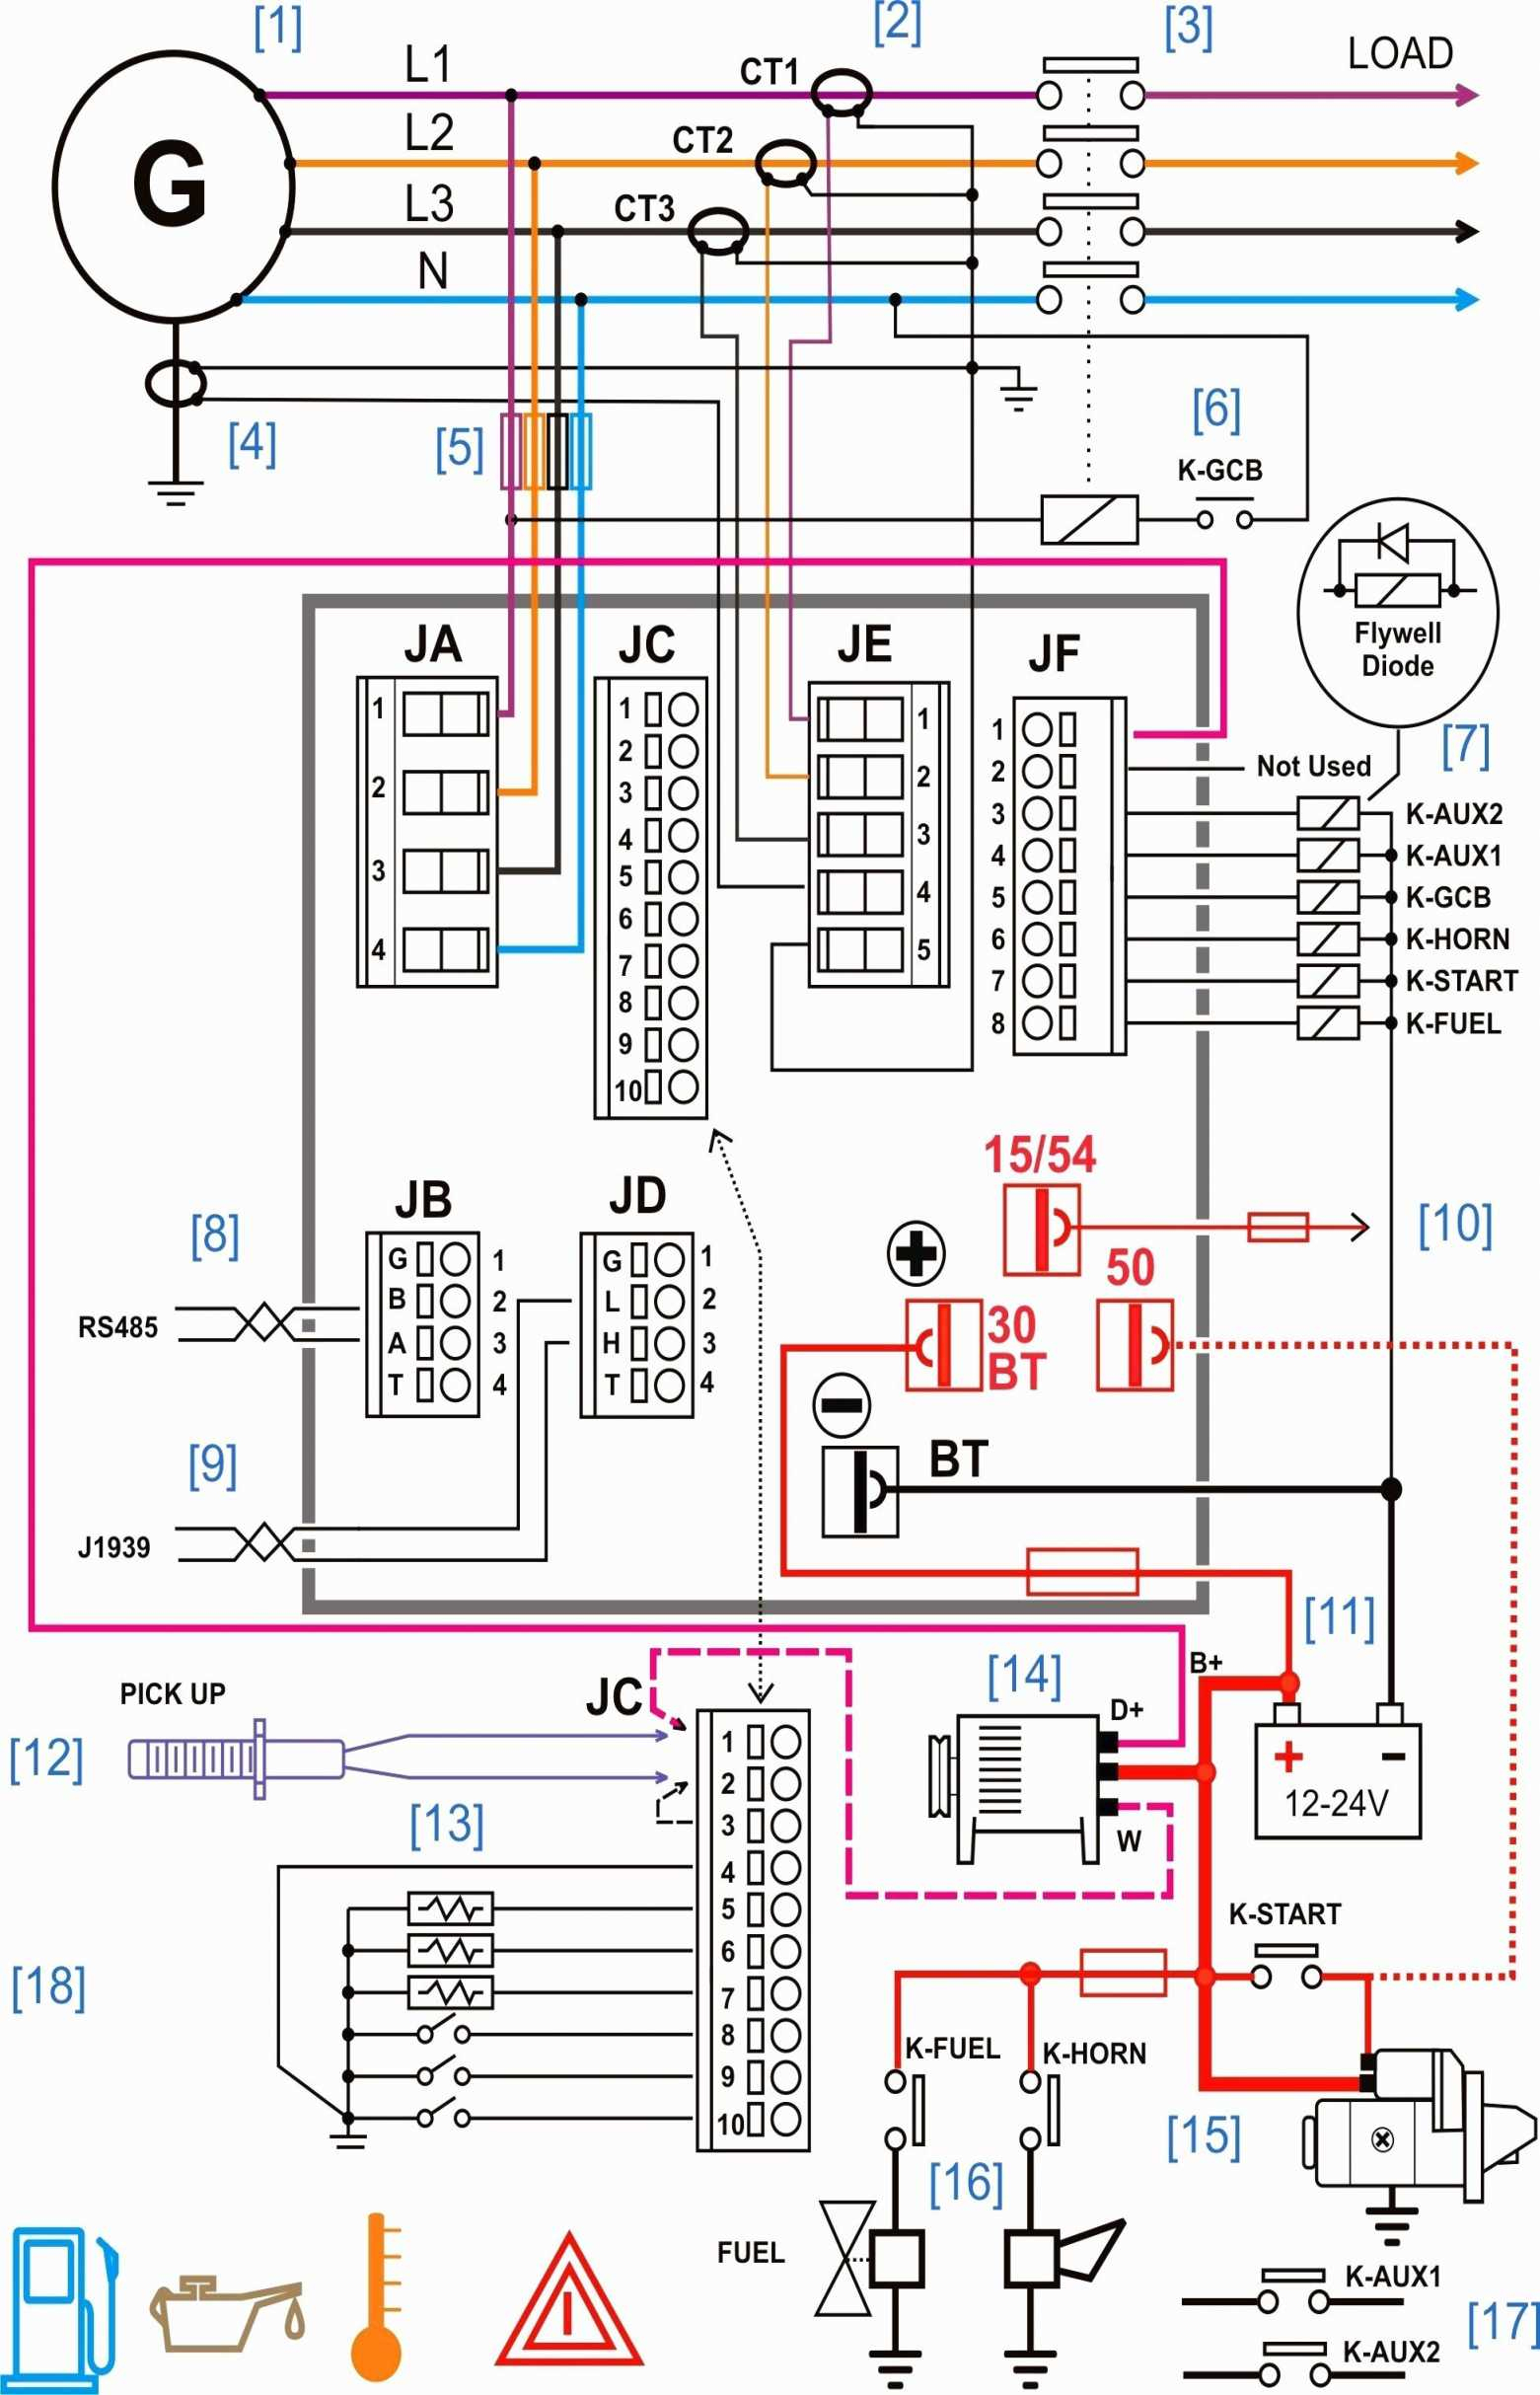 Wiring Diagram For Enclosed Trailer - Trusted Wiring Diagram - Homesteader Trailer Wiring Diagram